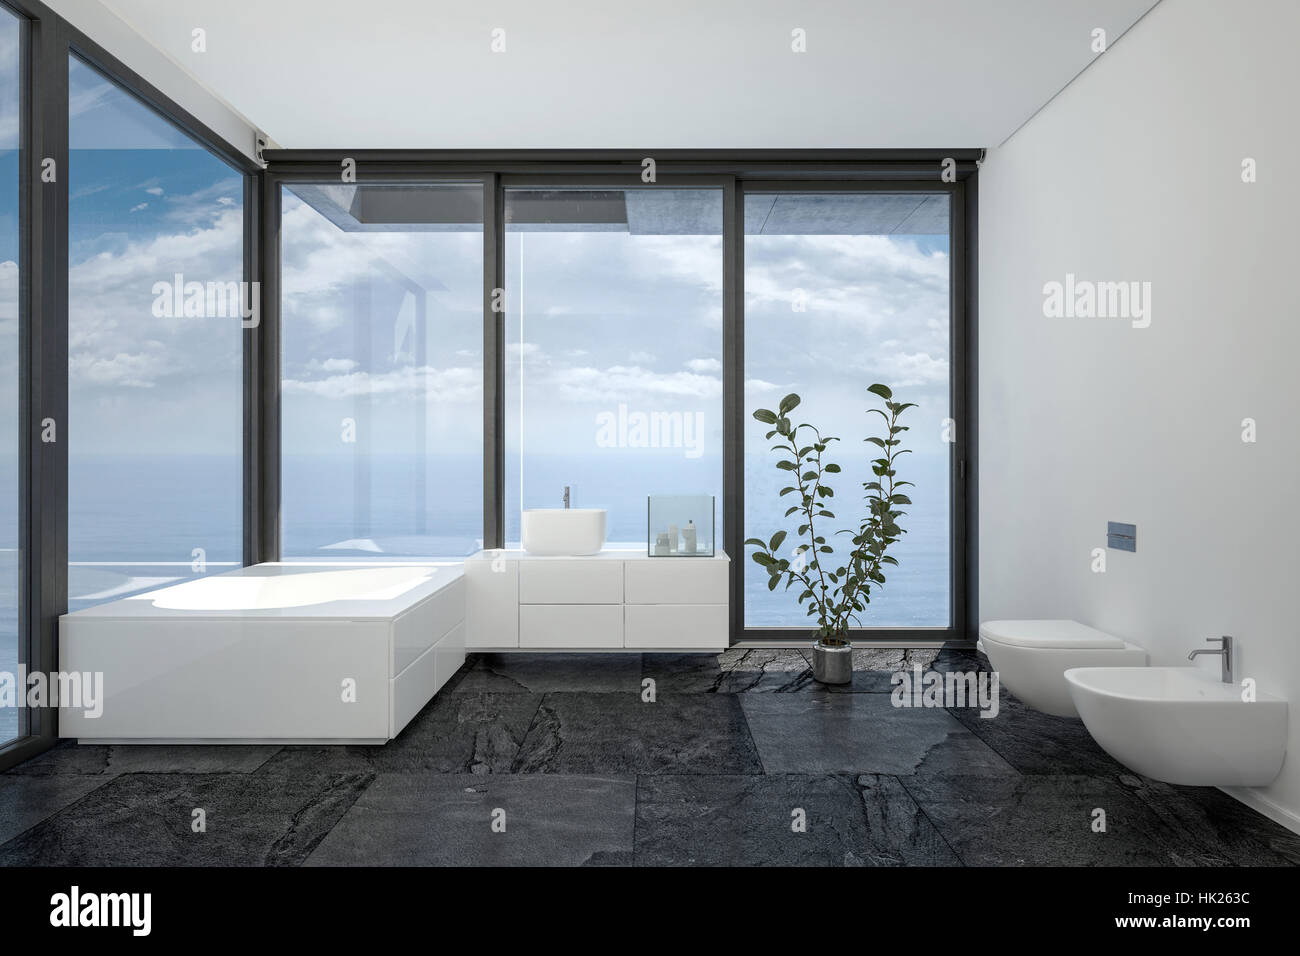 Bathroom of hotel room or penthouse in minimalist interior black and ...